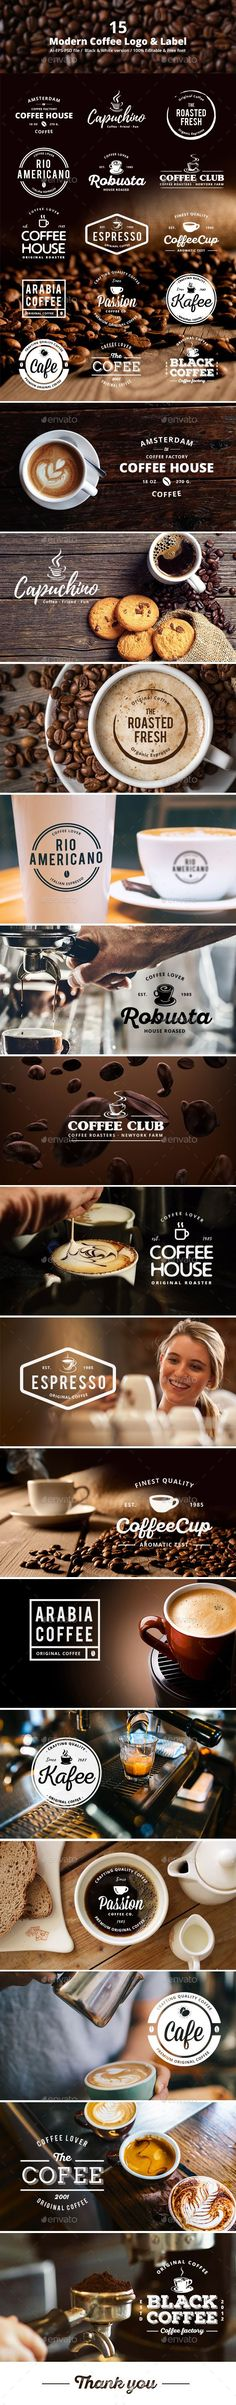 15 Modern Coffee Logo & Label Template PSD, Vector EPS, AI Illustrator. Download here: https://graphicriver.net/item/15-modern-coffee-logo-label/17684276?ref=ksioks